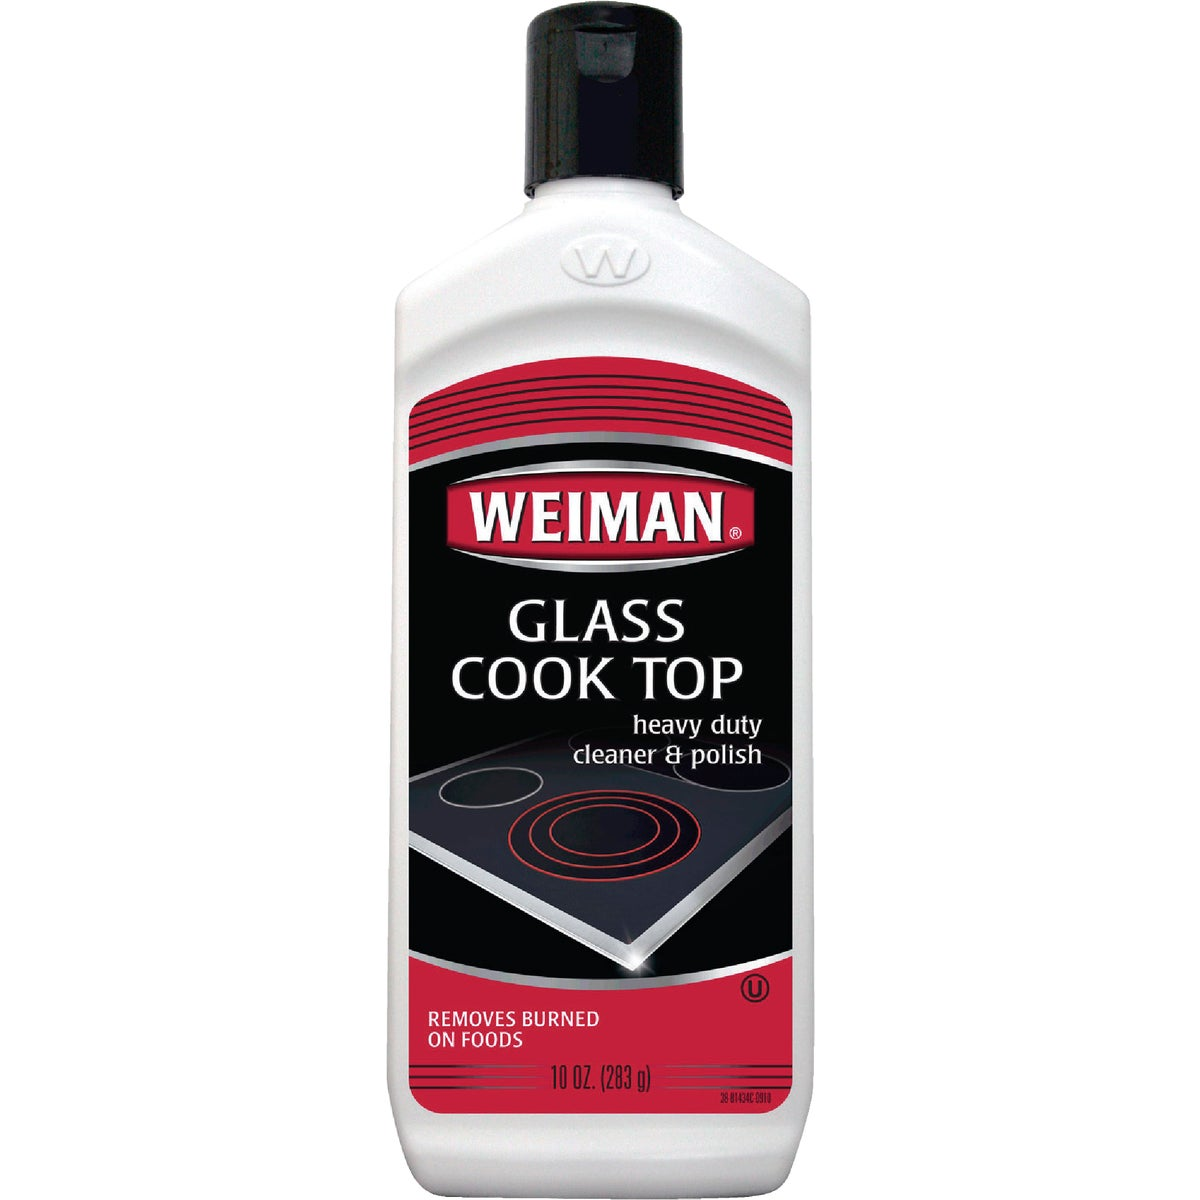 GLASS COOKTOP CLEANER - 38 by Weiman Products Llc